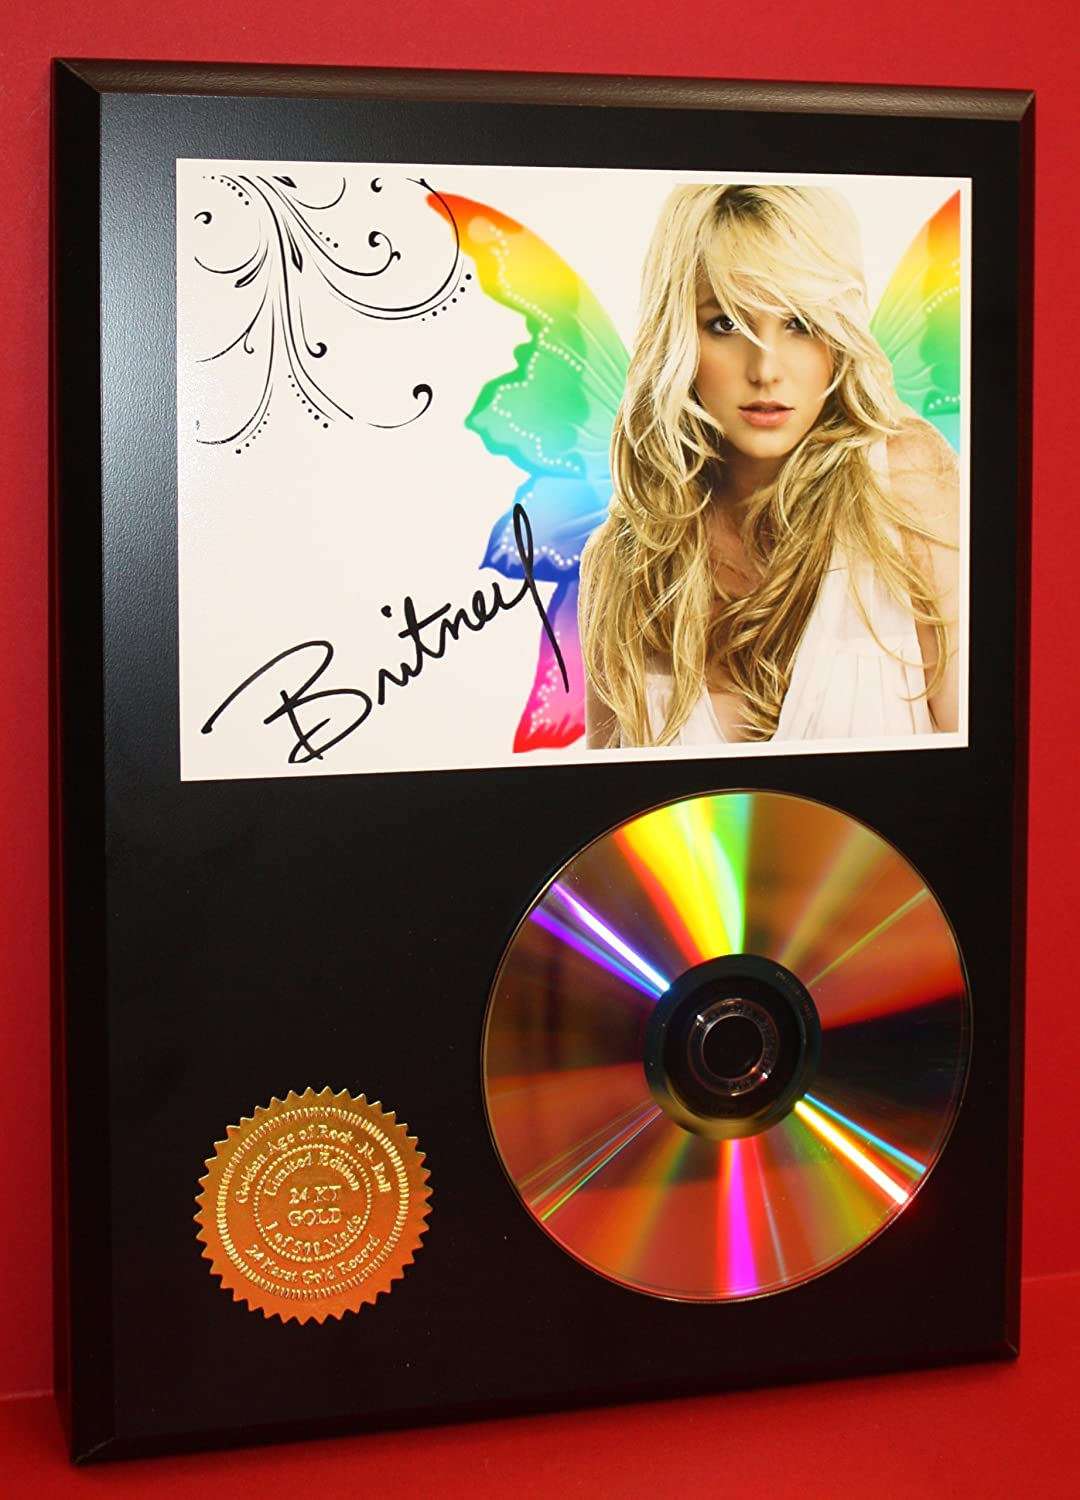 Britney Spears Butterfly Limited Edition 24Kt Gold Rare Collectible Disc Award Quality Music Display Gold Record Outlet